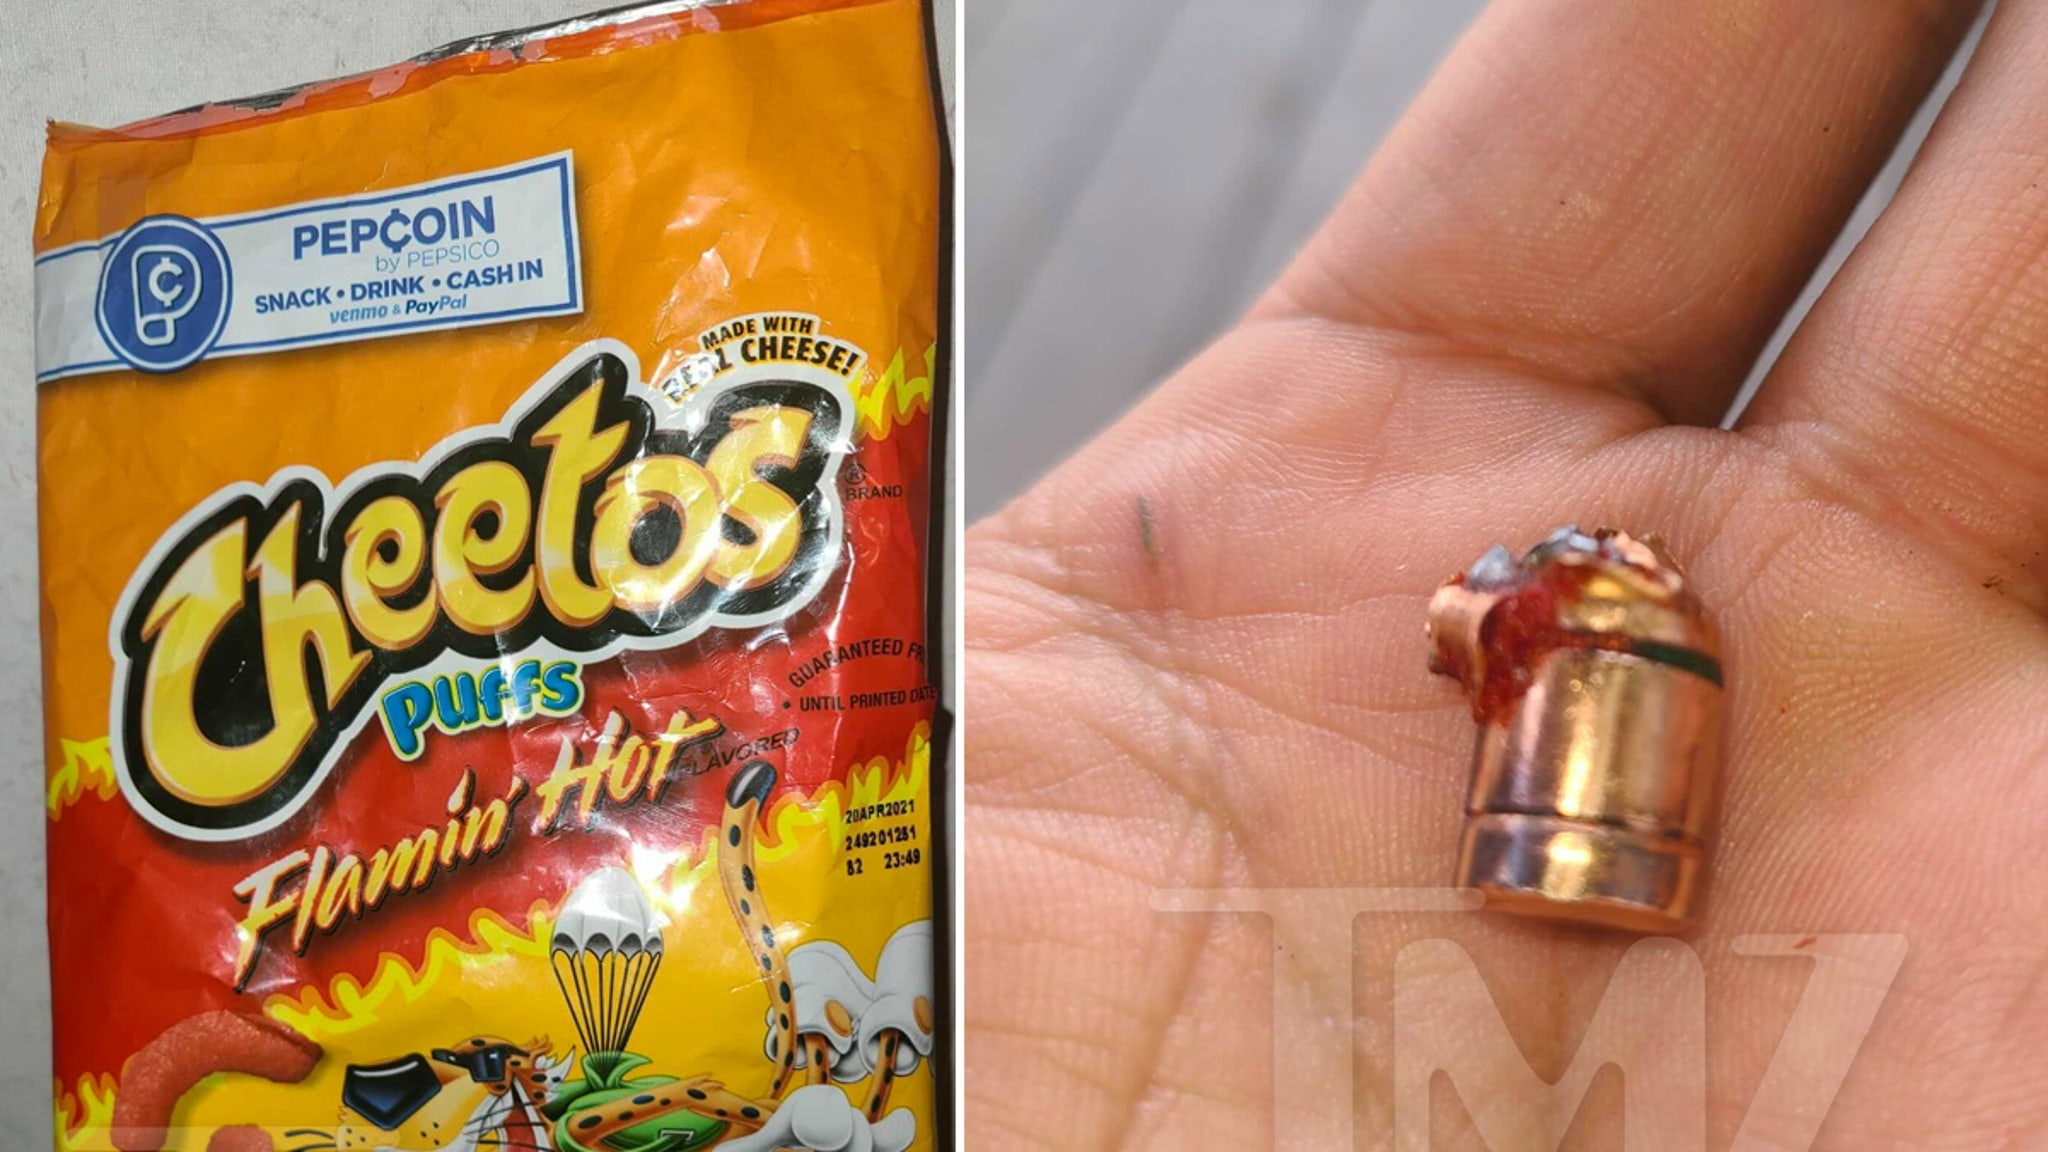 6-Year-old Boy Allegedly Finds Bullet in Hot Cheetos Bag thumbnail